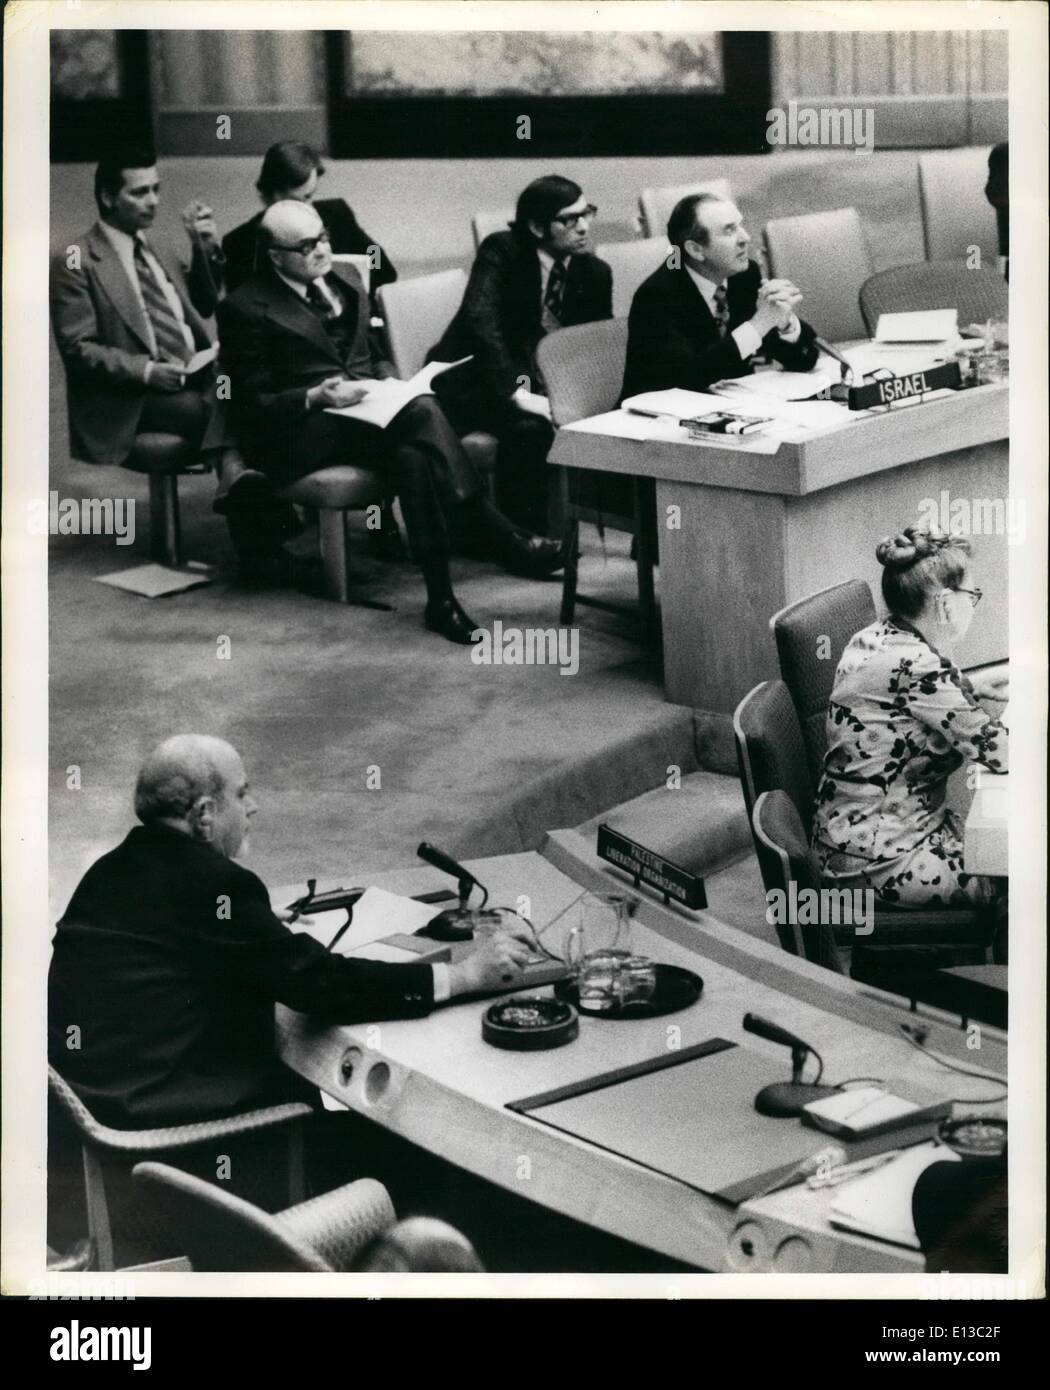 Feb. 29, 2012 - Acting observer to the UN for the PLO Zehdi Labib Terzi (lower left) tapping his pencil against a water pitcher - Stock Image